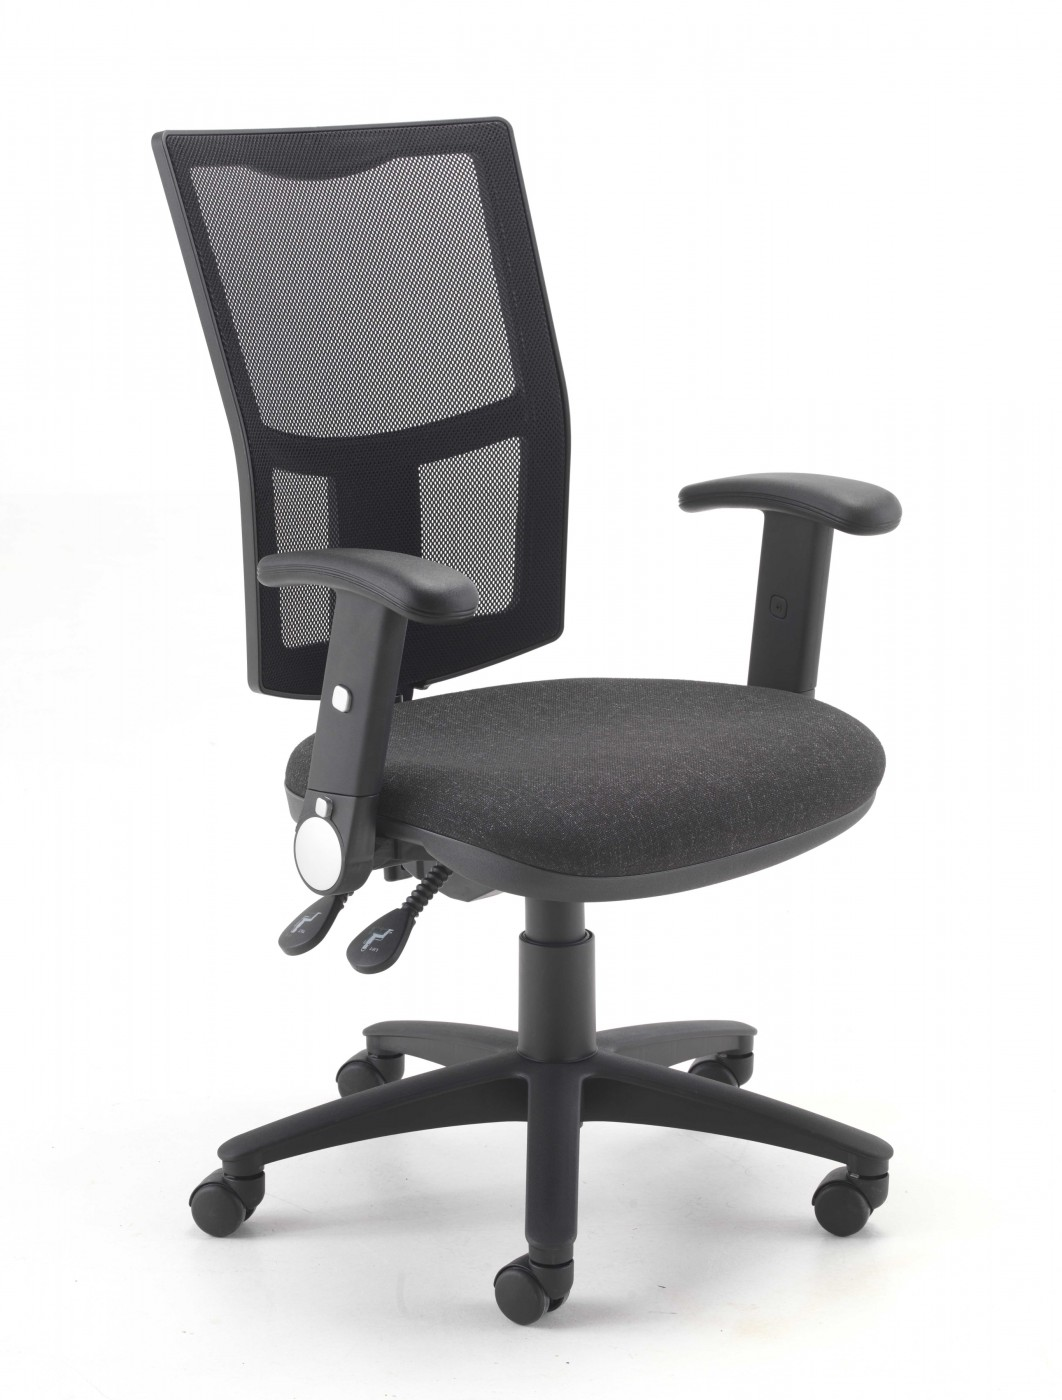 Tc mesh office chair ch2803 ac1082 121 office furniture for Office furniture chairs